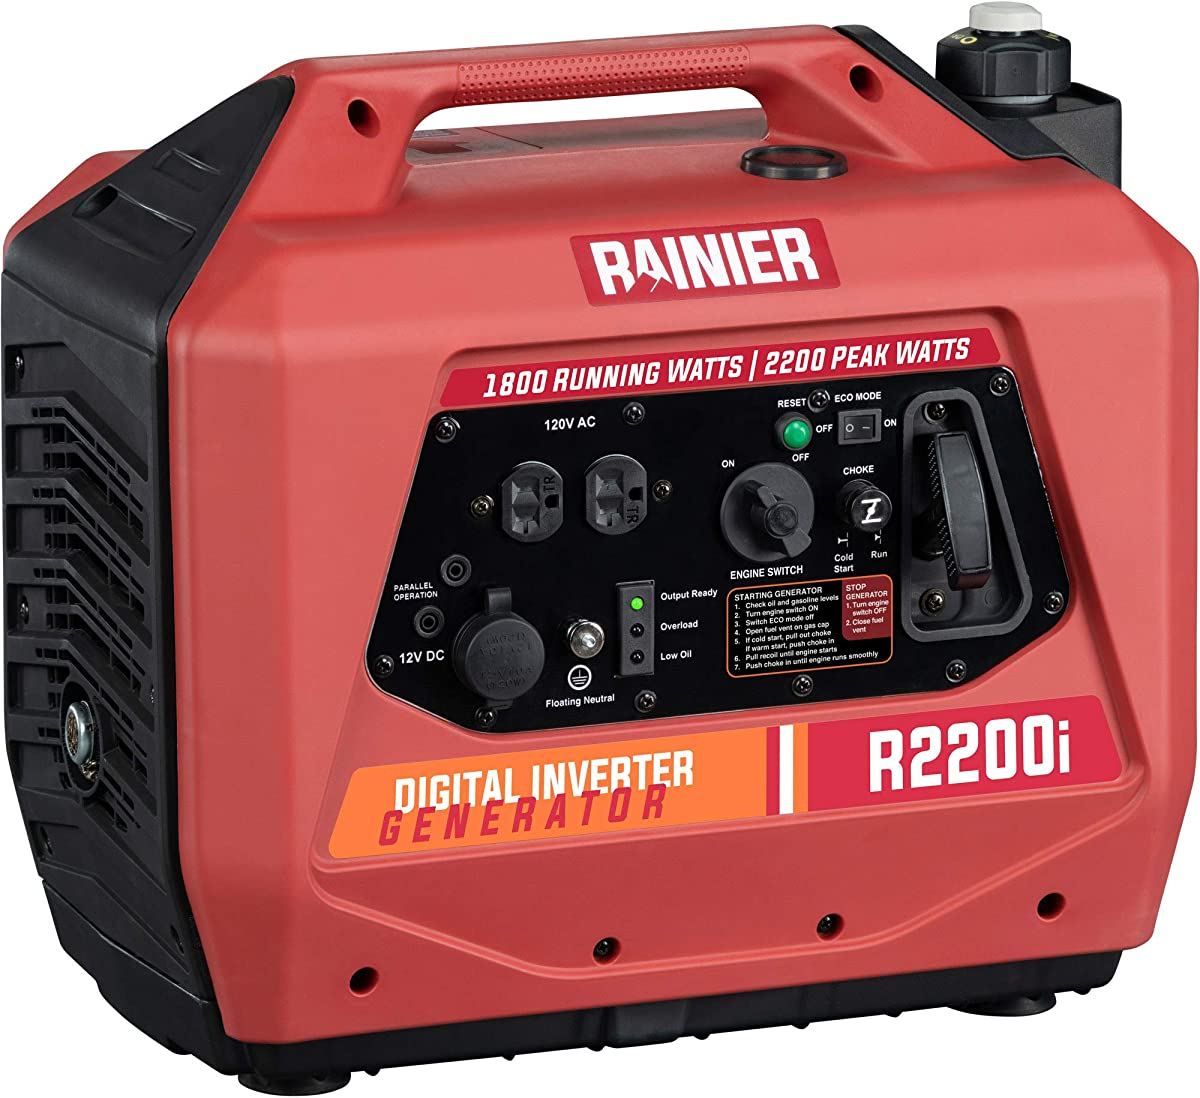 Gasoline powered super quiet portable generator